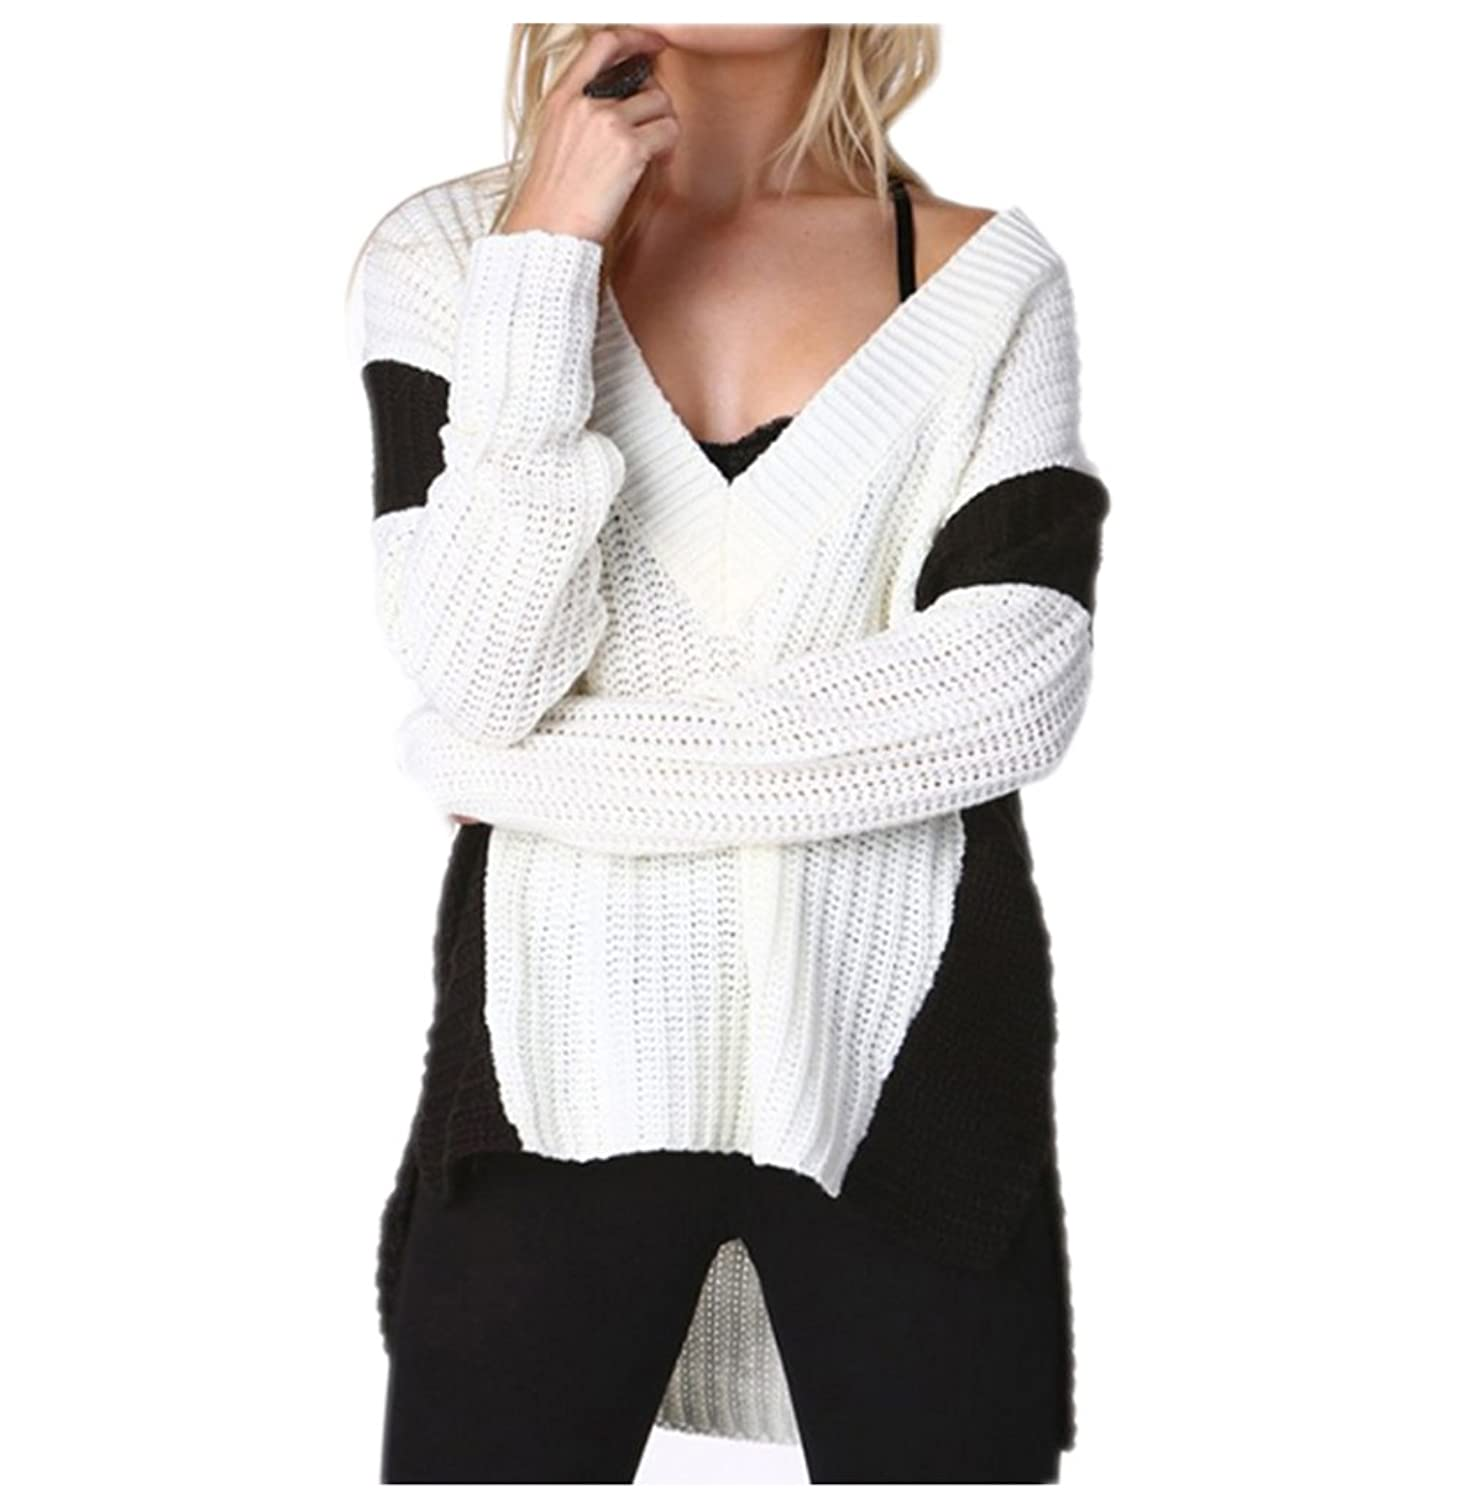 HAODUOYI Women Boy Friend Style Contrast Color Pullover V Neck High Low Sweater